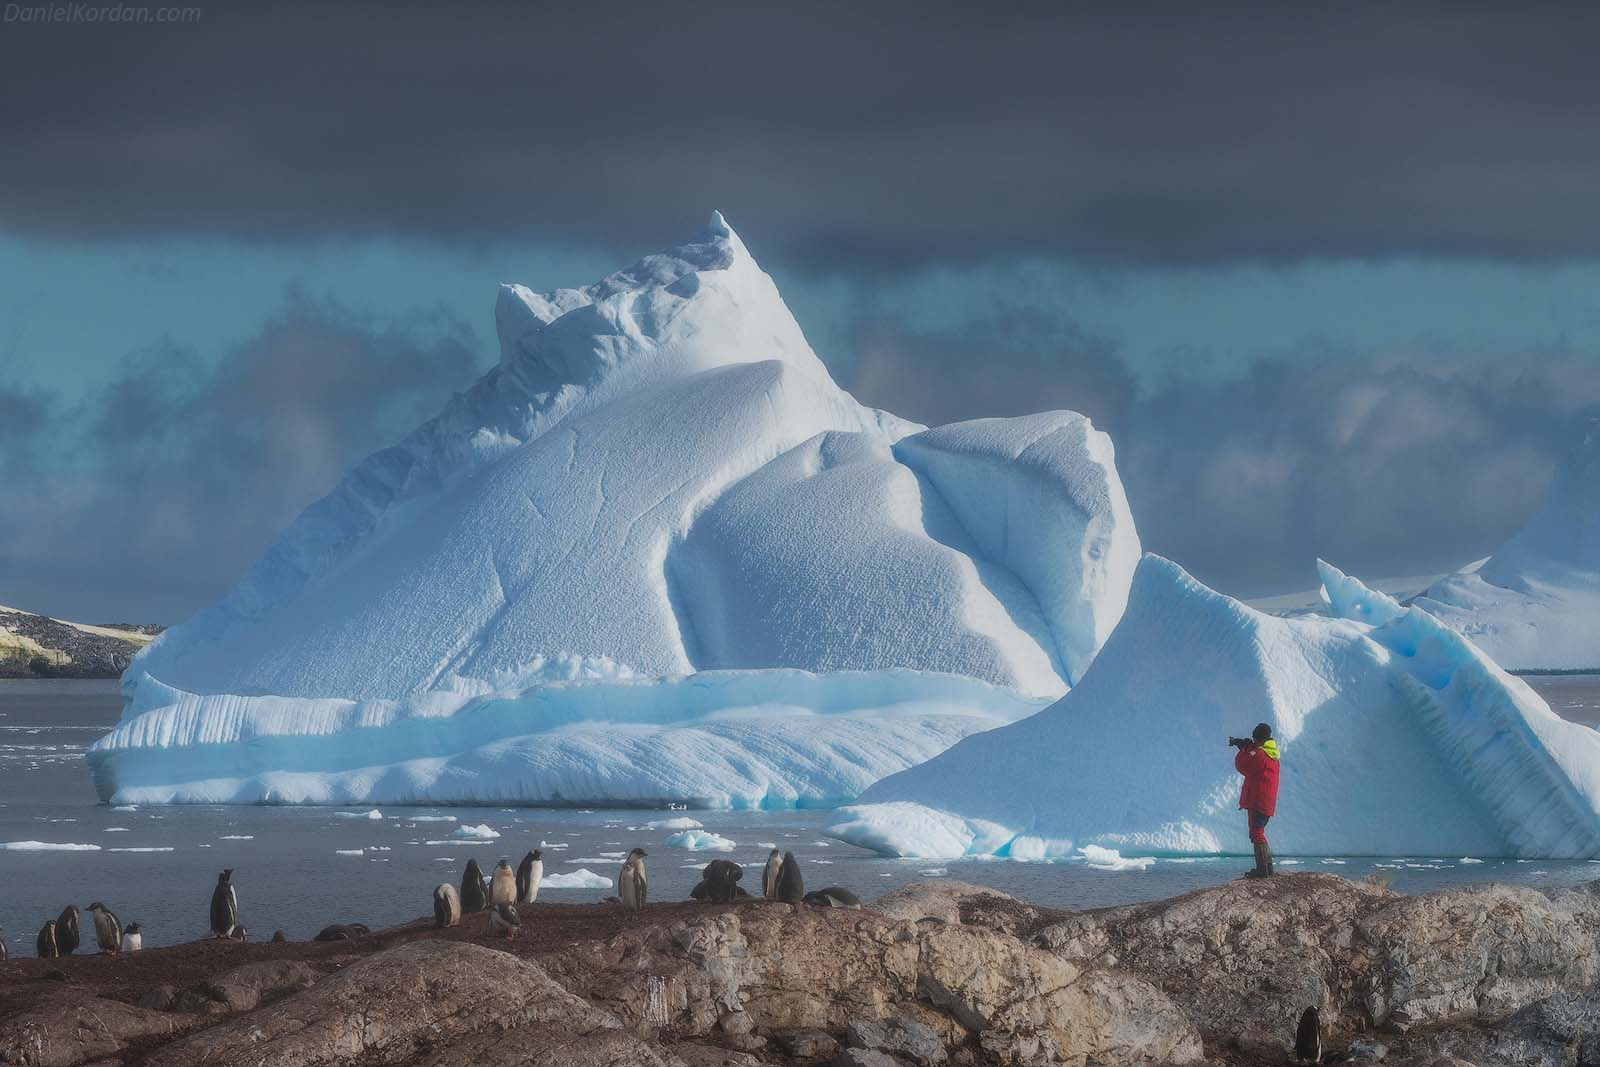 22 Day Antarctica Photography Expedition on Bark Europa - day 14